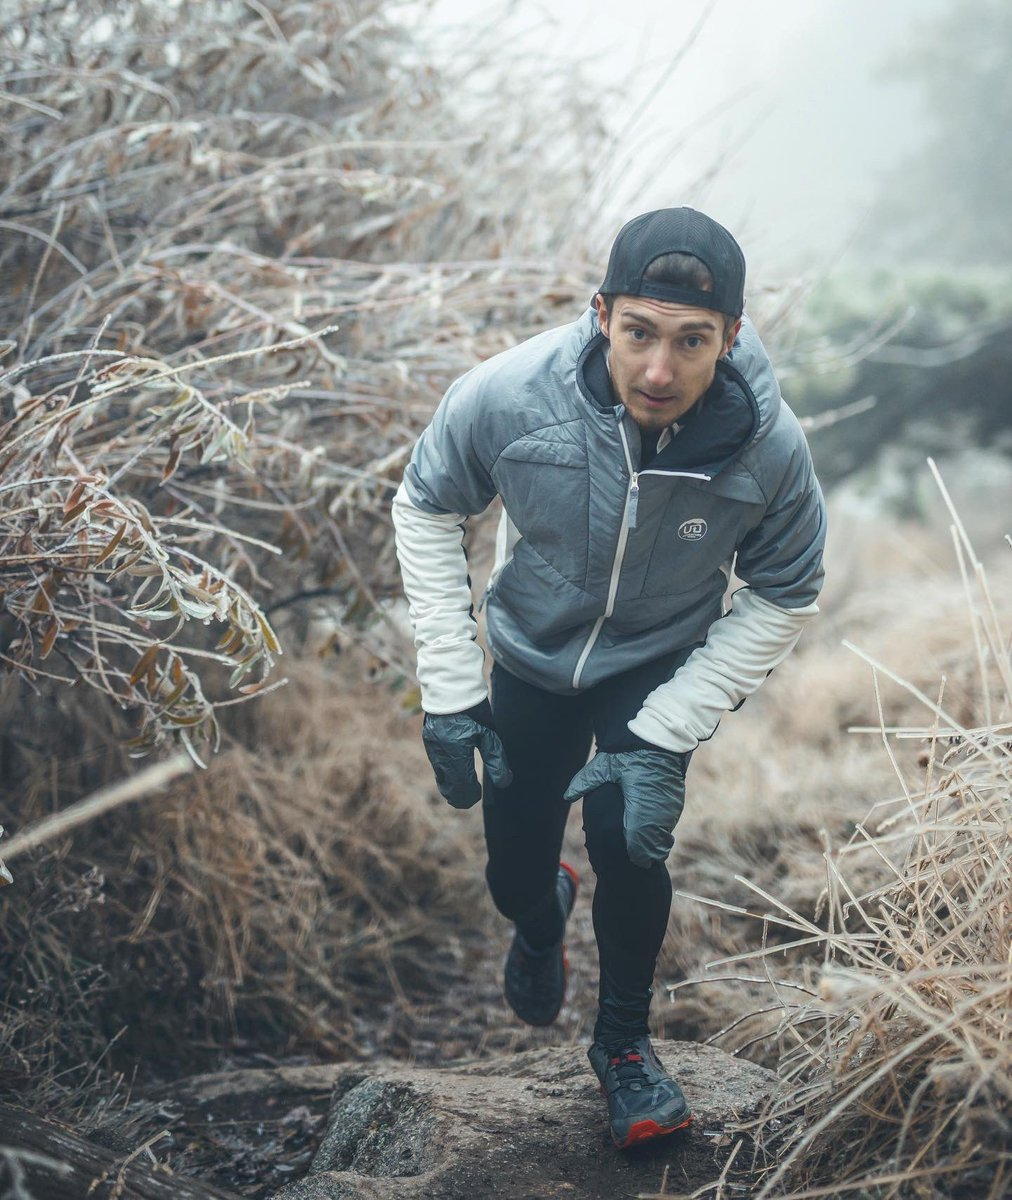 Sneak peak: new fall/winter running apparel drops soon. Pictured: new Hydro Tight and Ventro Jacket